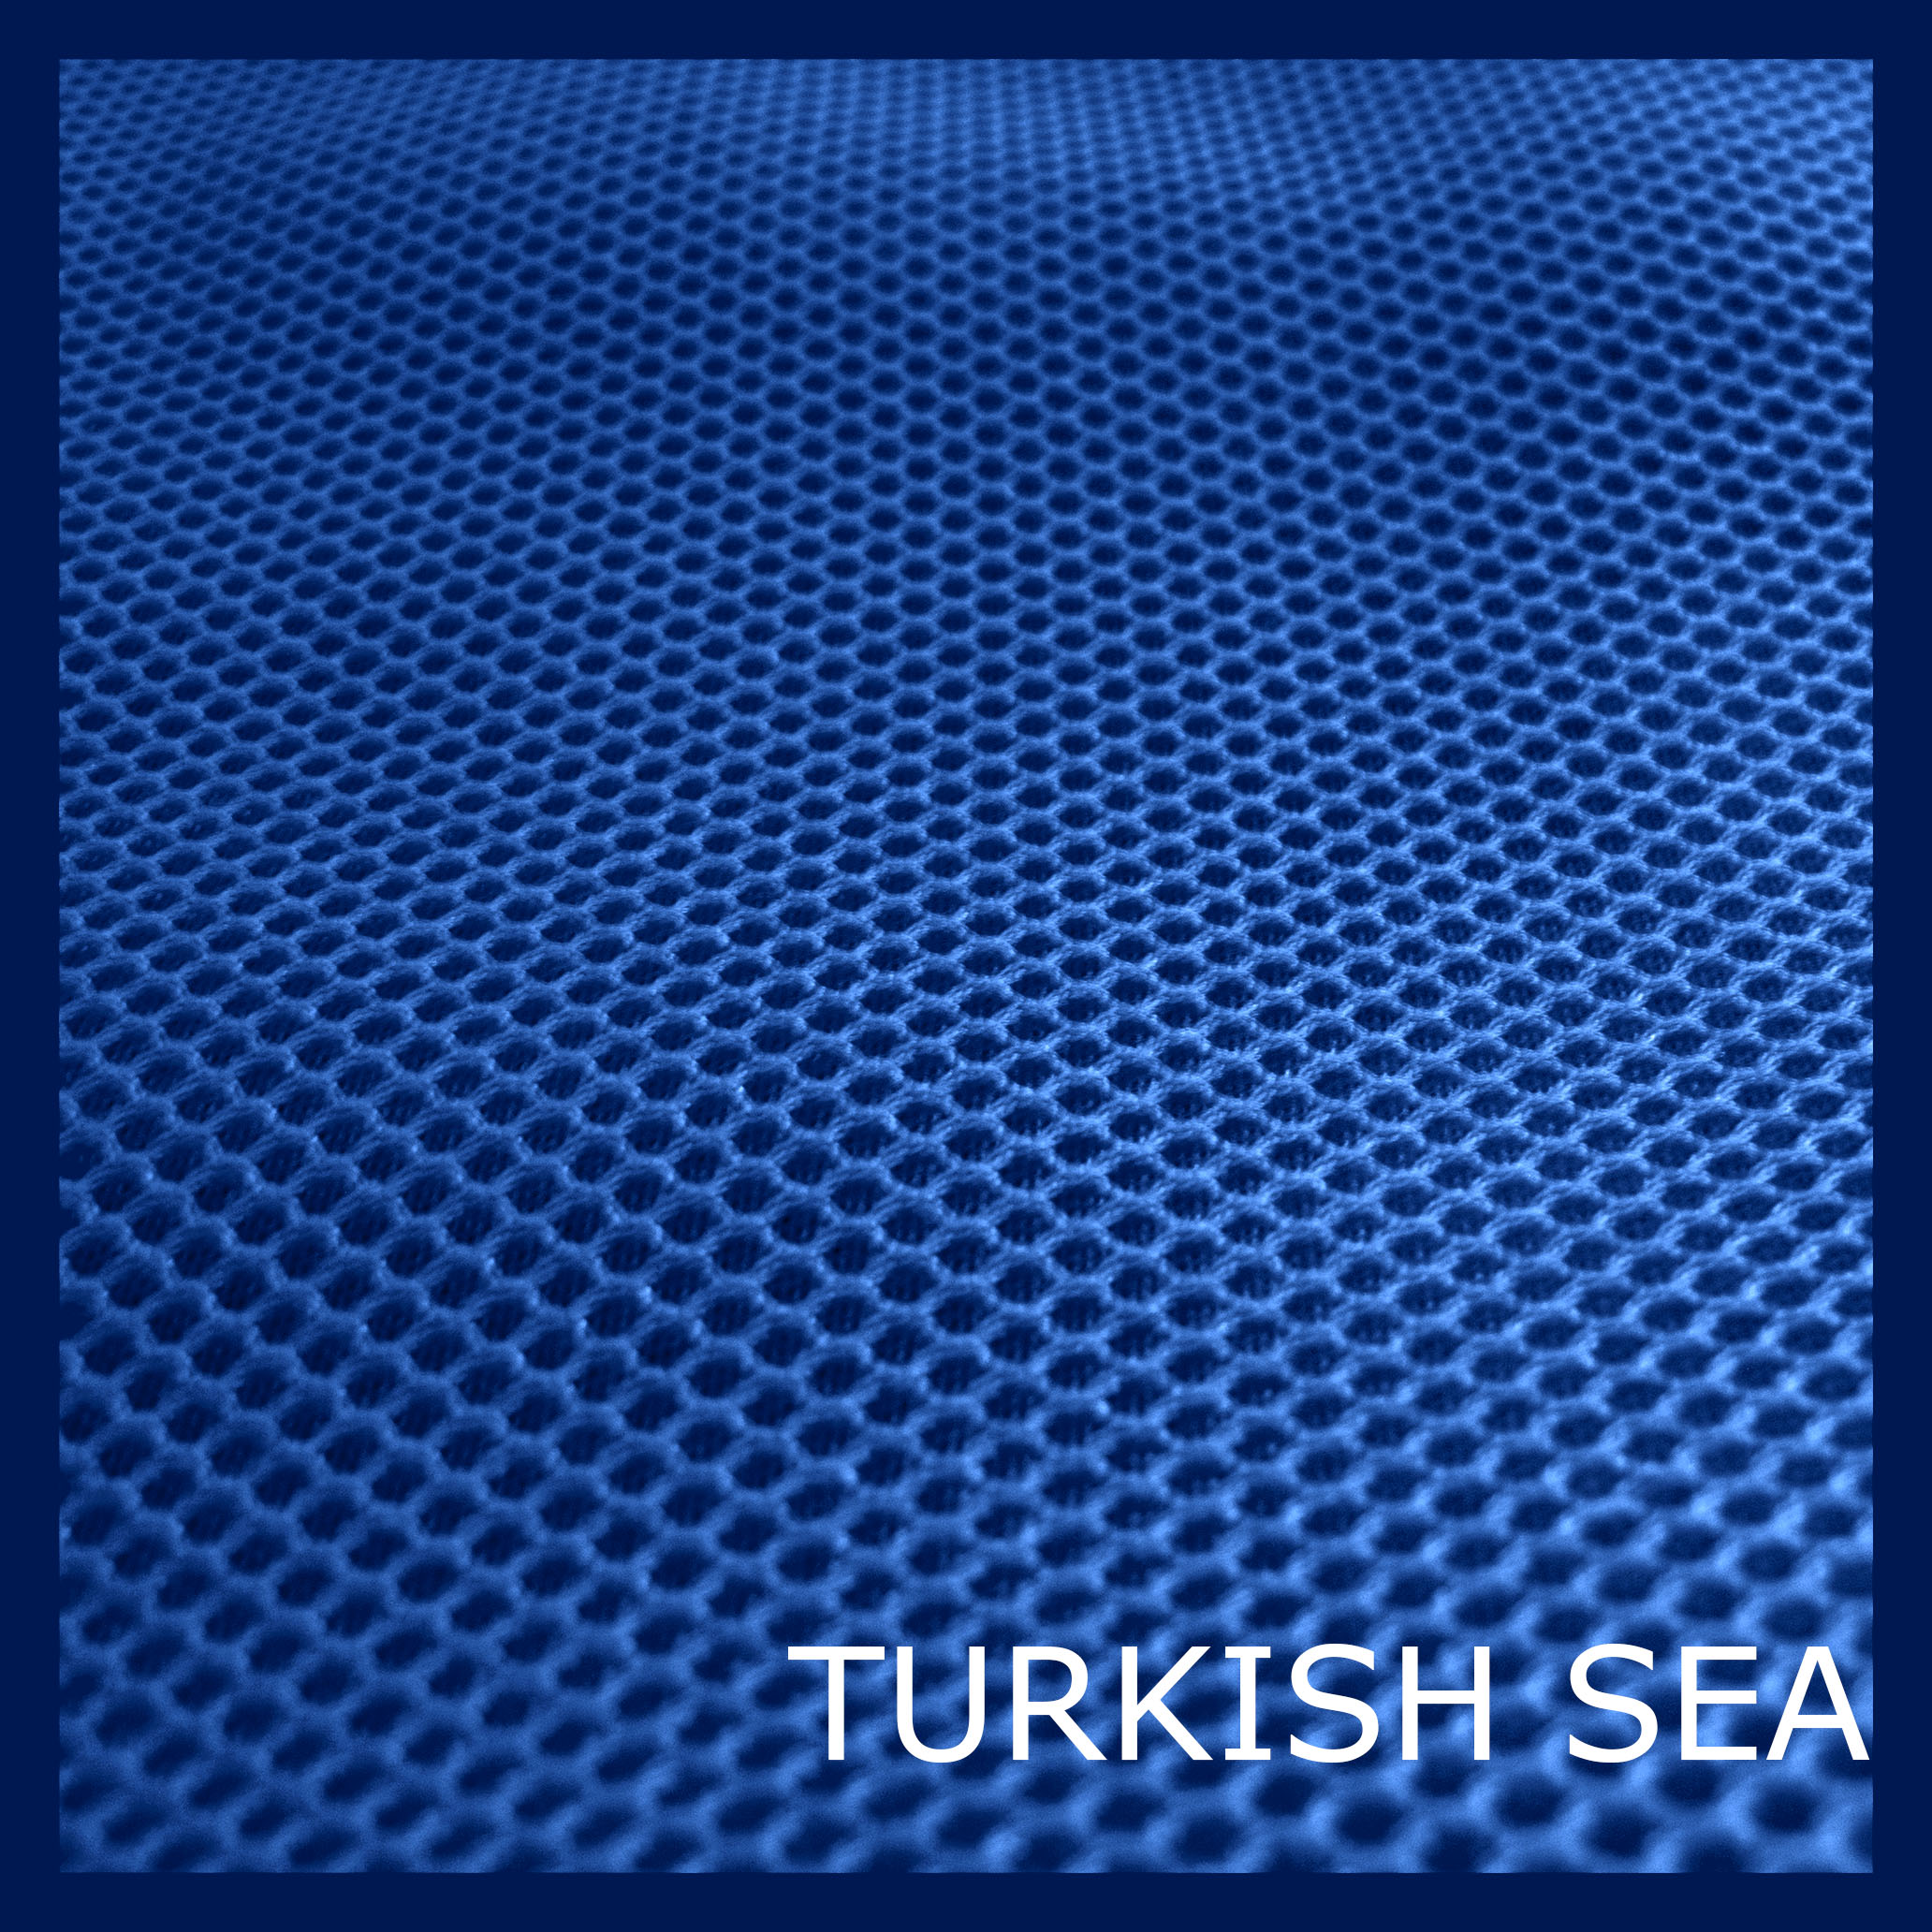 TURKISH SEA fabric